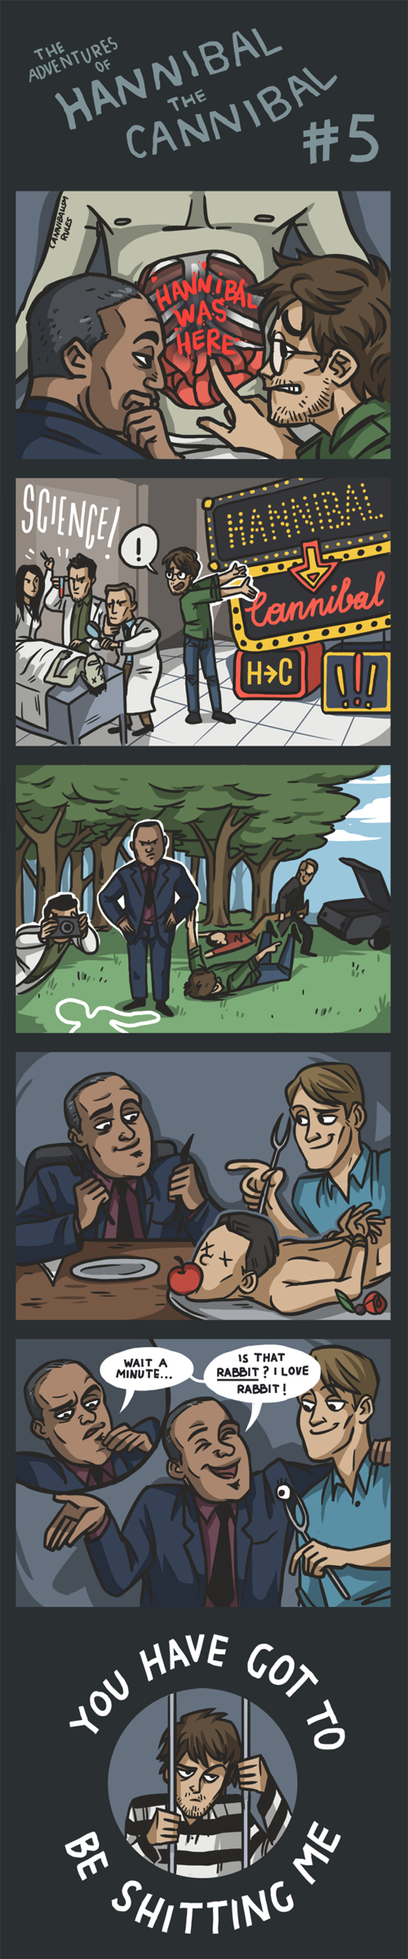 The Adventures of Hannibal the Cannibal #5 by ekzotik